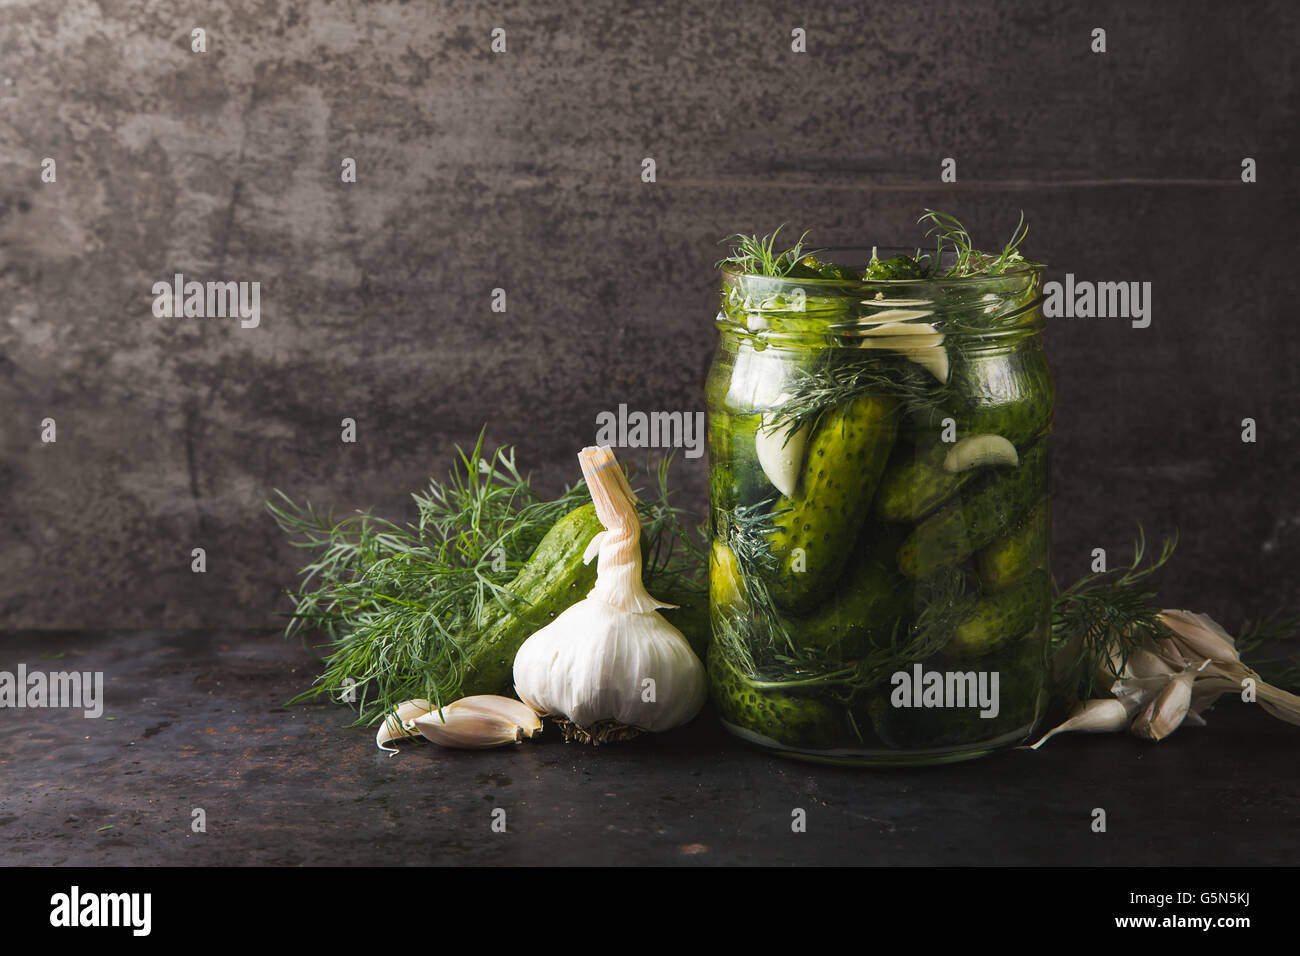 Glass jar of pickles with dill and garlic - Stock Image